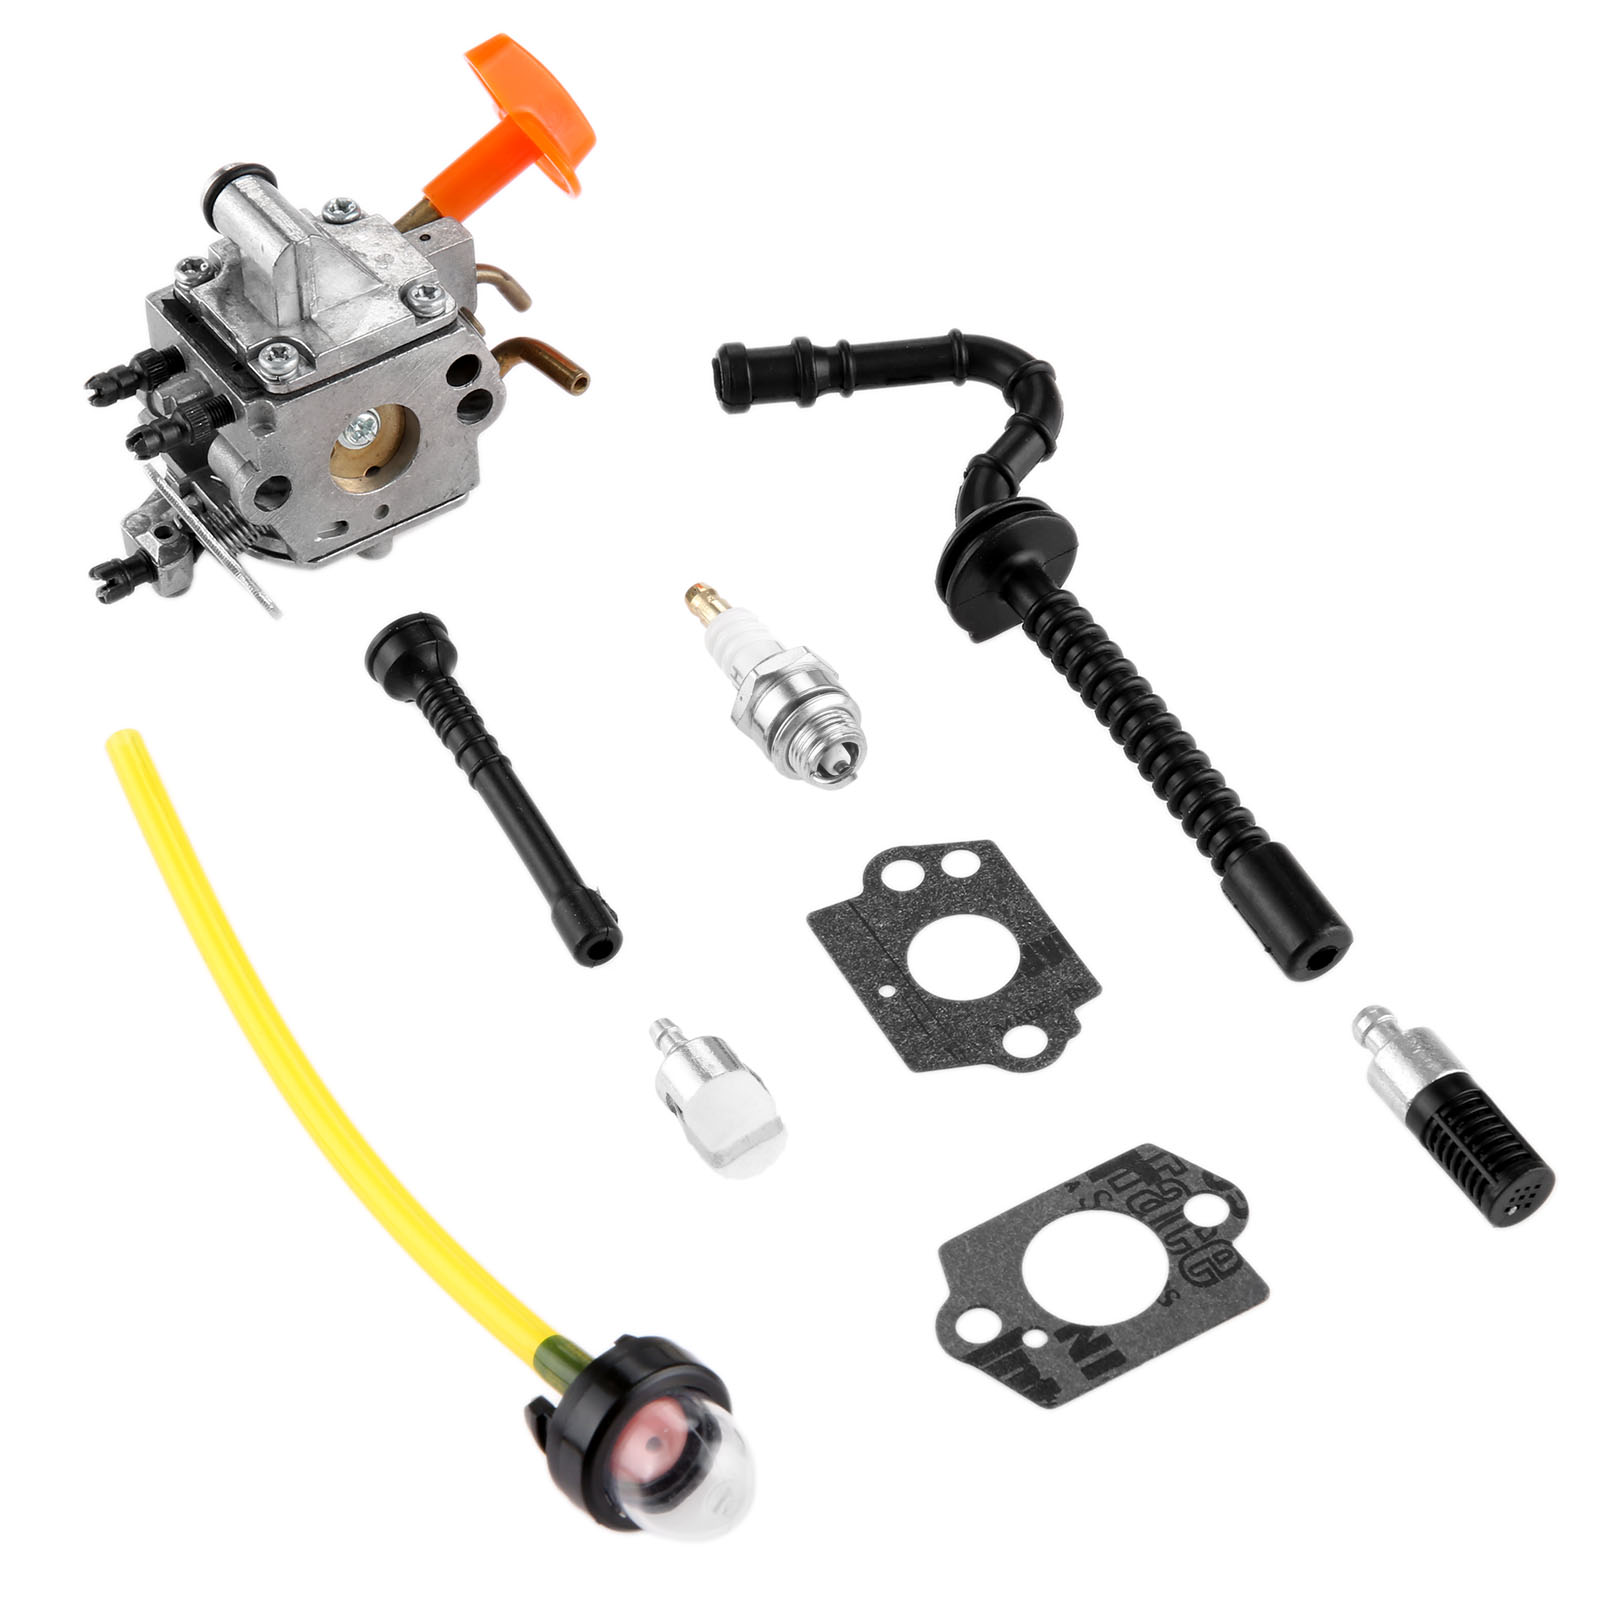 DRELD Carburetor Carb for Stihl MS192 MS192T MS192TC Chainsaw Zama C1Q-S258 with Gasket Fuel Filter Hose Pimer Bulb Spark Plug цены